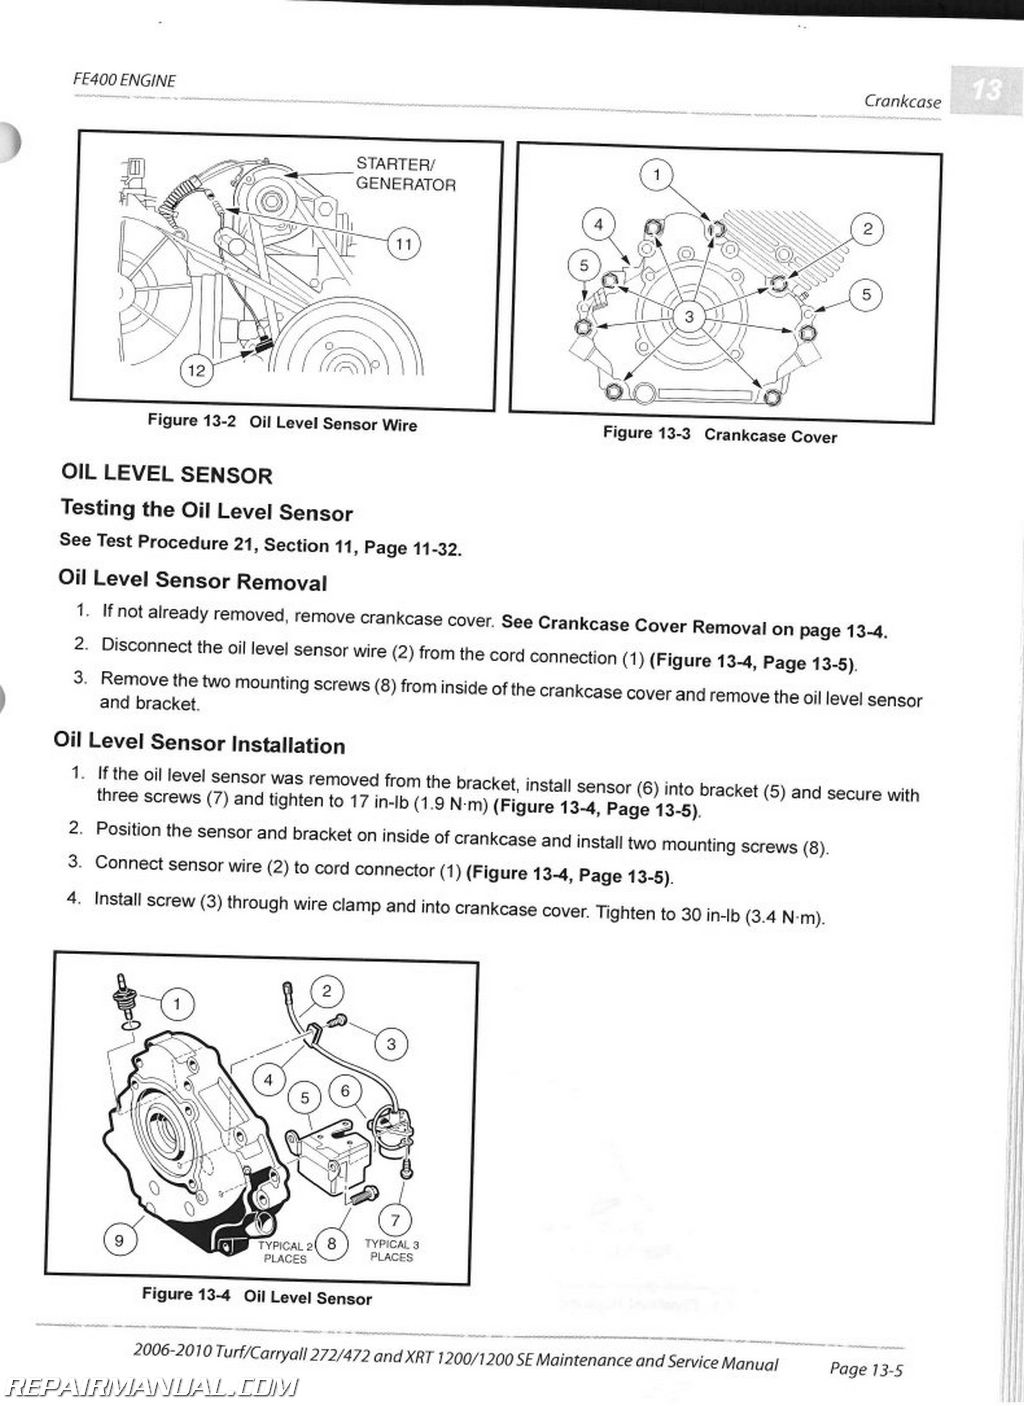 Club Car Carryall Wiring Diagram Library 2006 2010 Turf 272 472 Xrt1200 Se Rh Repairmanual Com